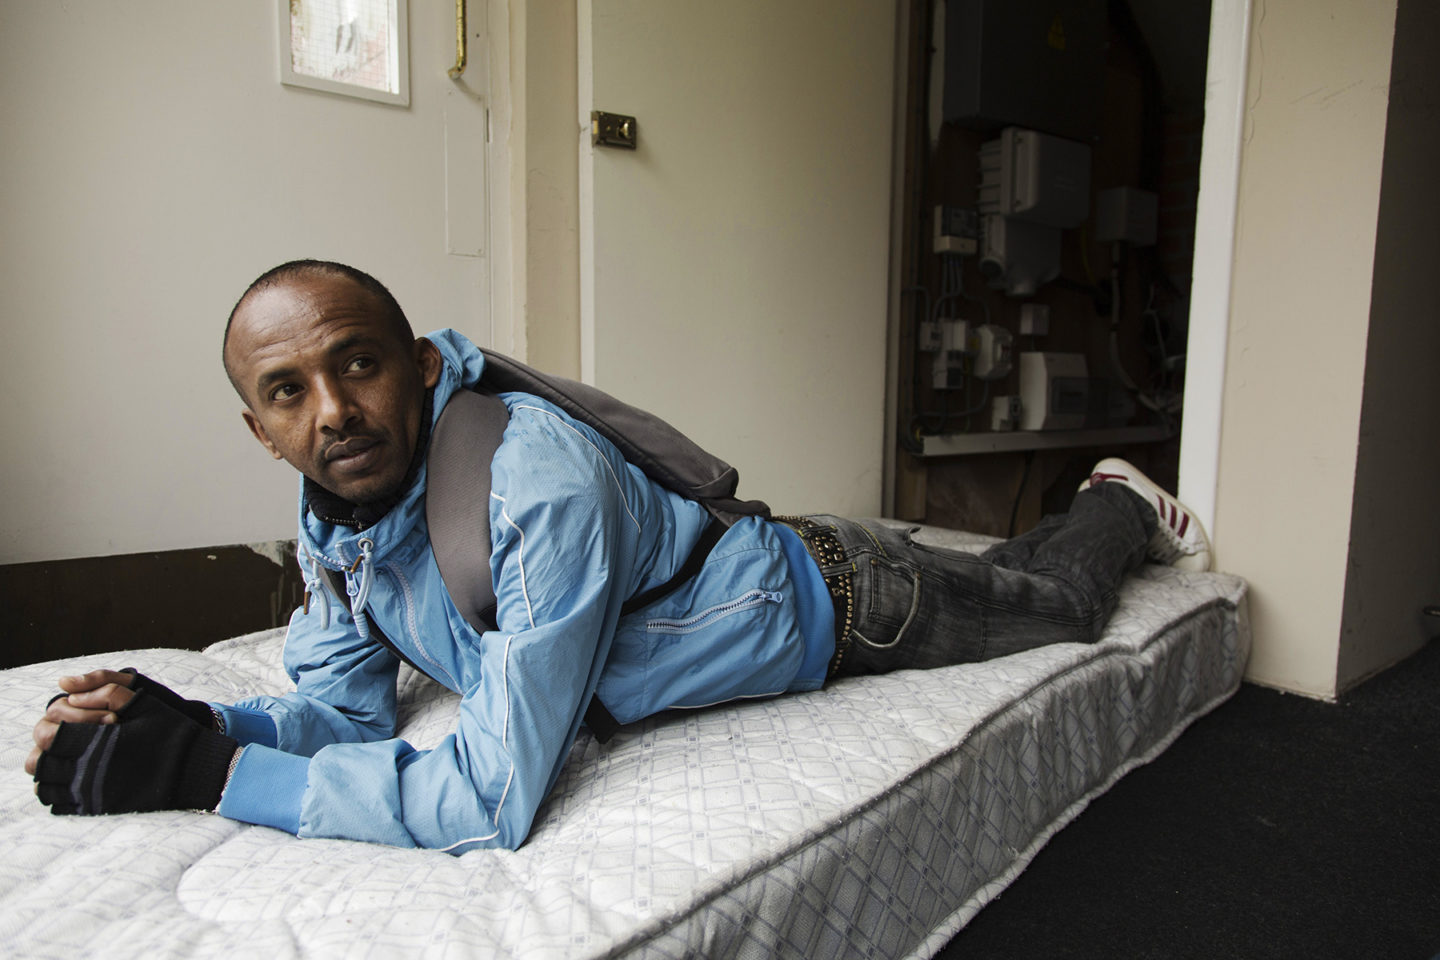 Eritrean refugee on a bed in a Glasgow flat